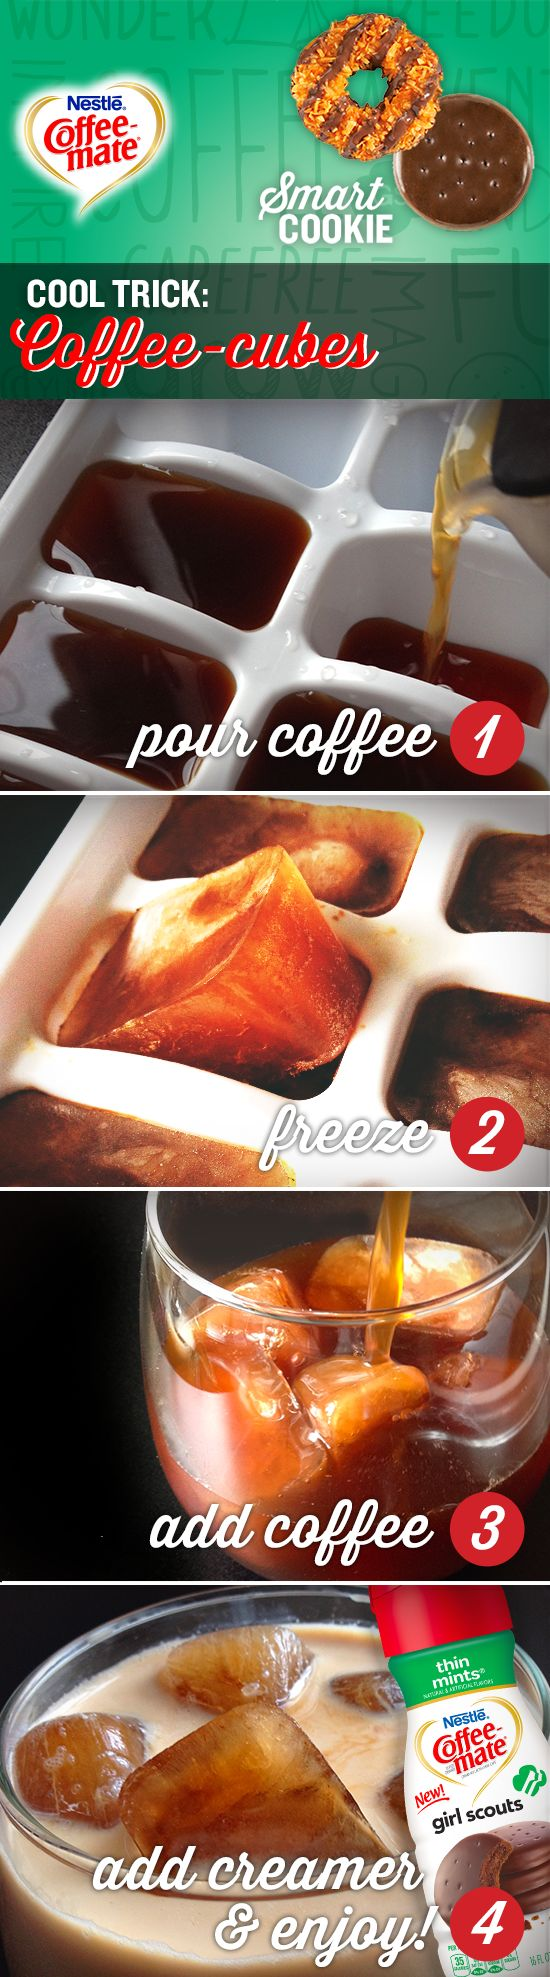 Keep your iced coffee cold without watering it down. Make coffee ice cubes! First, pour brewed coffee into ice cubes trays and freeze. Once frozen, pop coffee cubes into a cup and add cold coffee. Stir in your favorite Coffee-mate® Girl Scouts® flavored creamer and enjoy! #CMSmartCookie